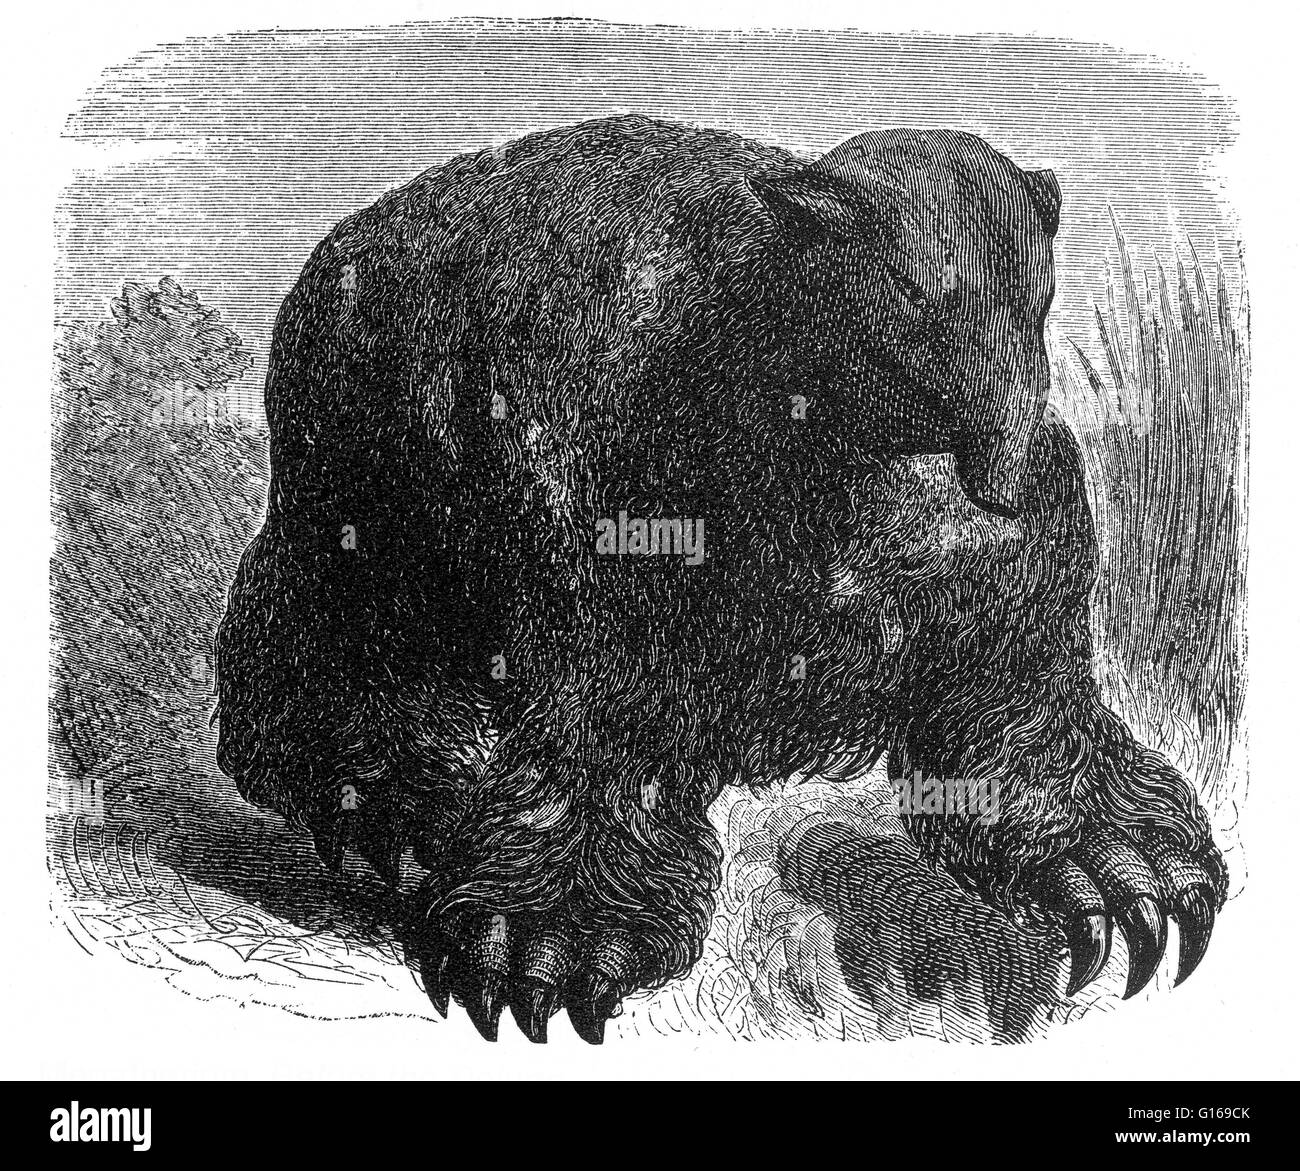 Megatherium (Great Beast) was a genus of elephant-sized ground sloths endemic to Central America and South America - Stock Image